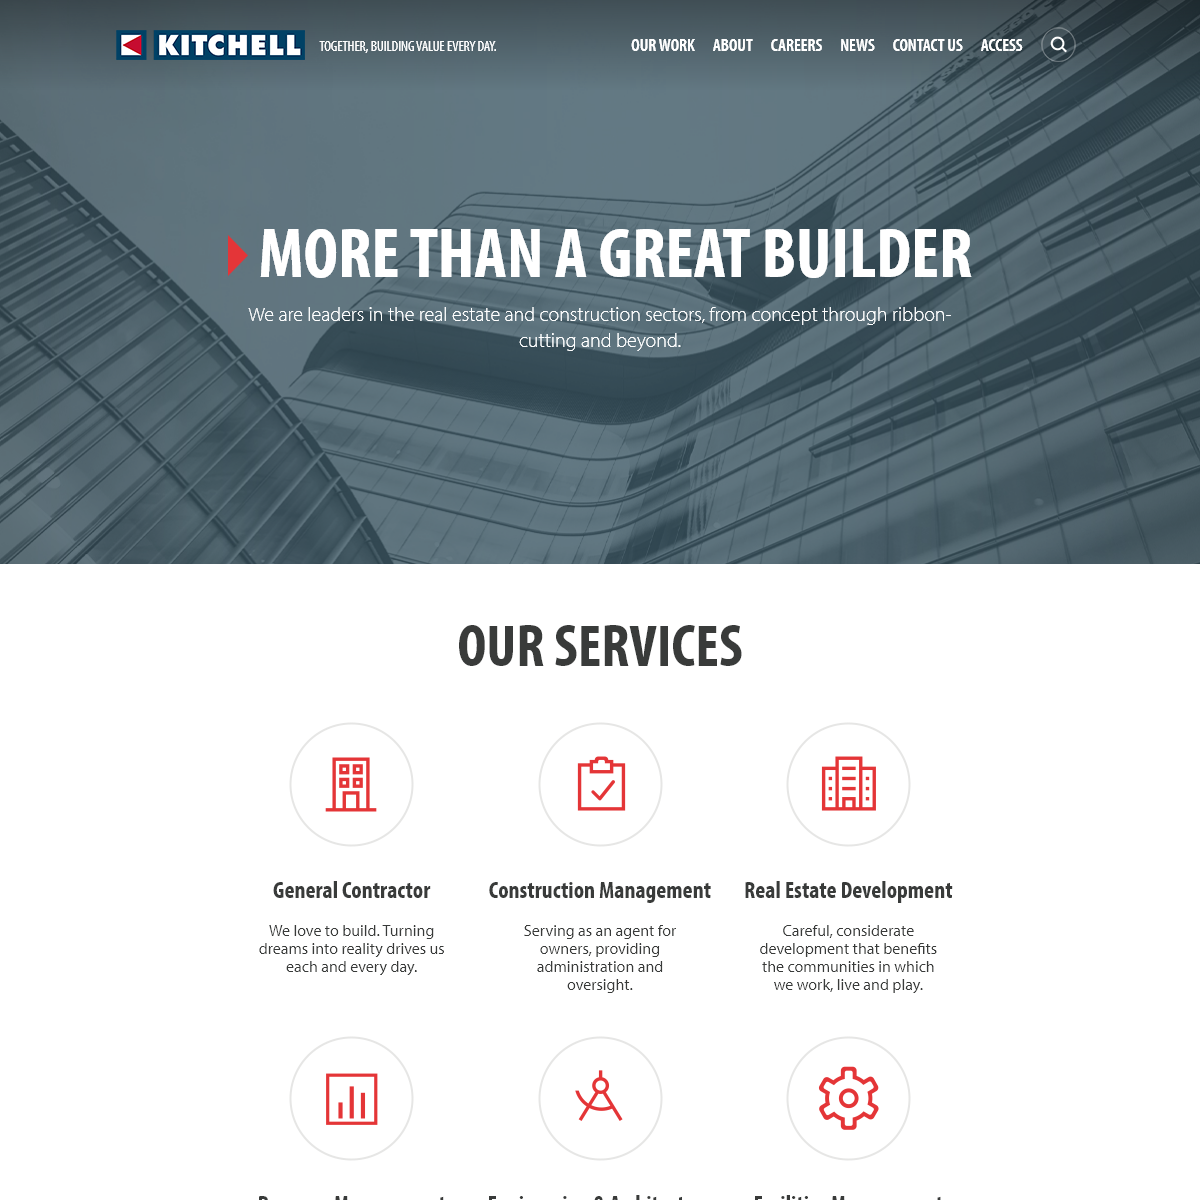 Kitchell – Together, building value every day.